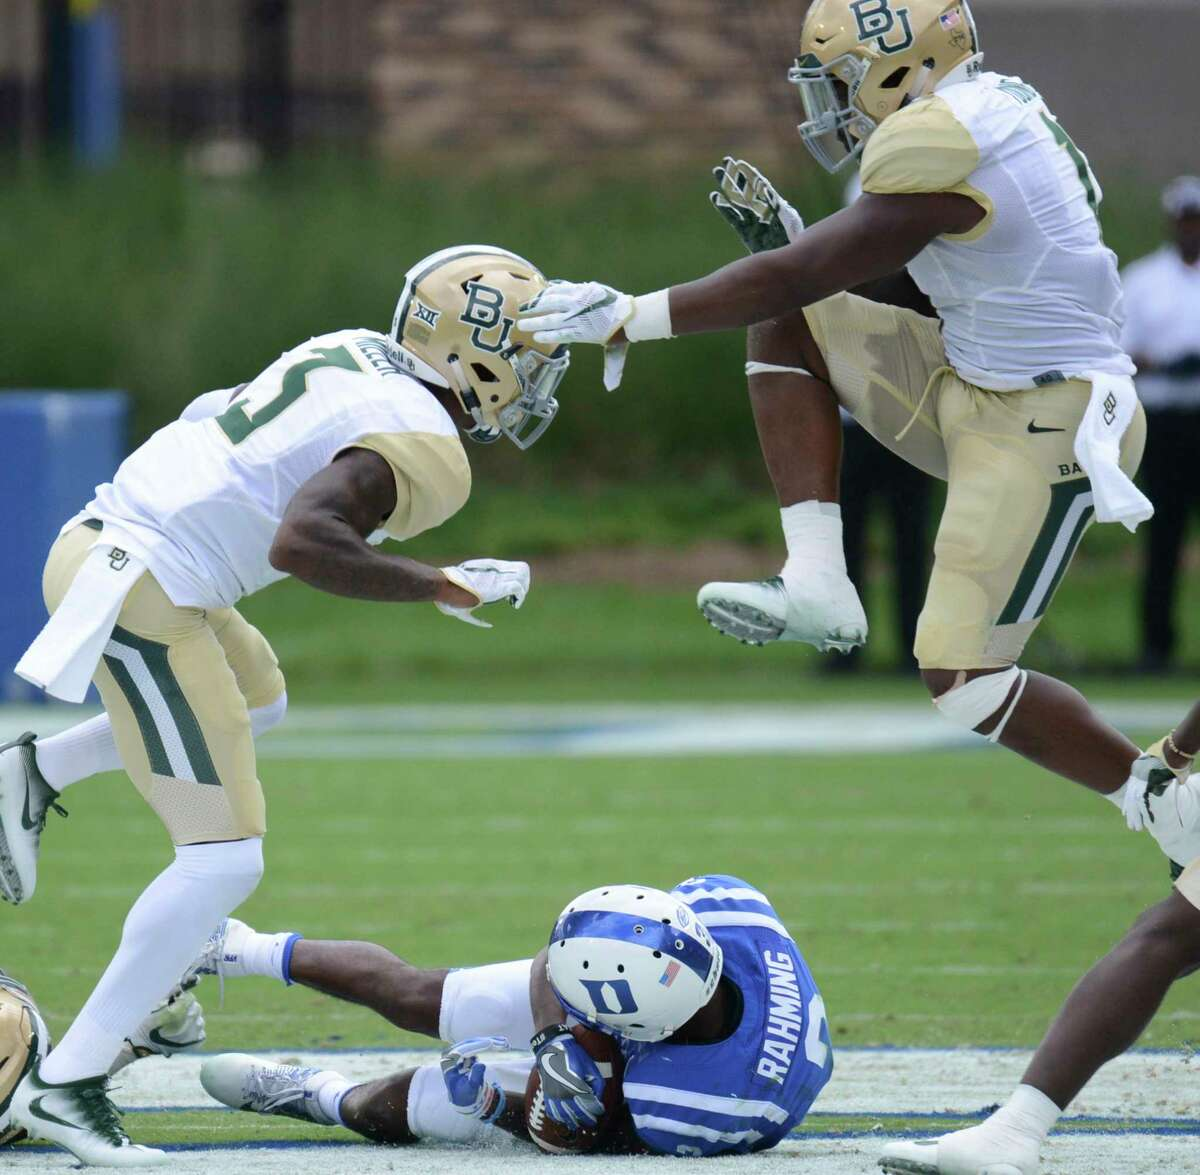 Baylor's Chad Kelly, left, and Davion Hall jumps over Duke's T.J. Rahming after a first down during an NCAA college football game, Saturday , Sept. 16, 2017, in Durham, N.C. (Bernard Thomas/The Herald-Sun via AP)